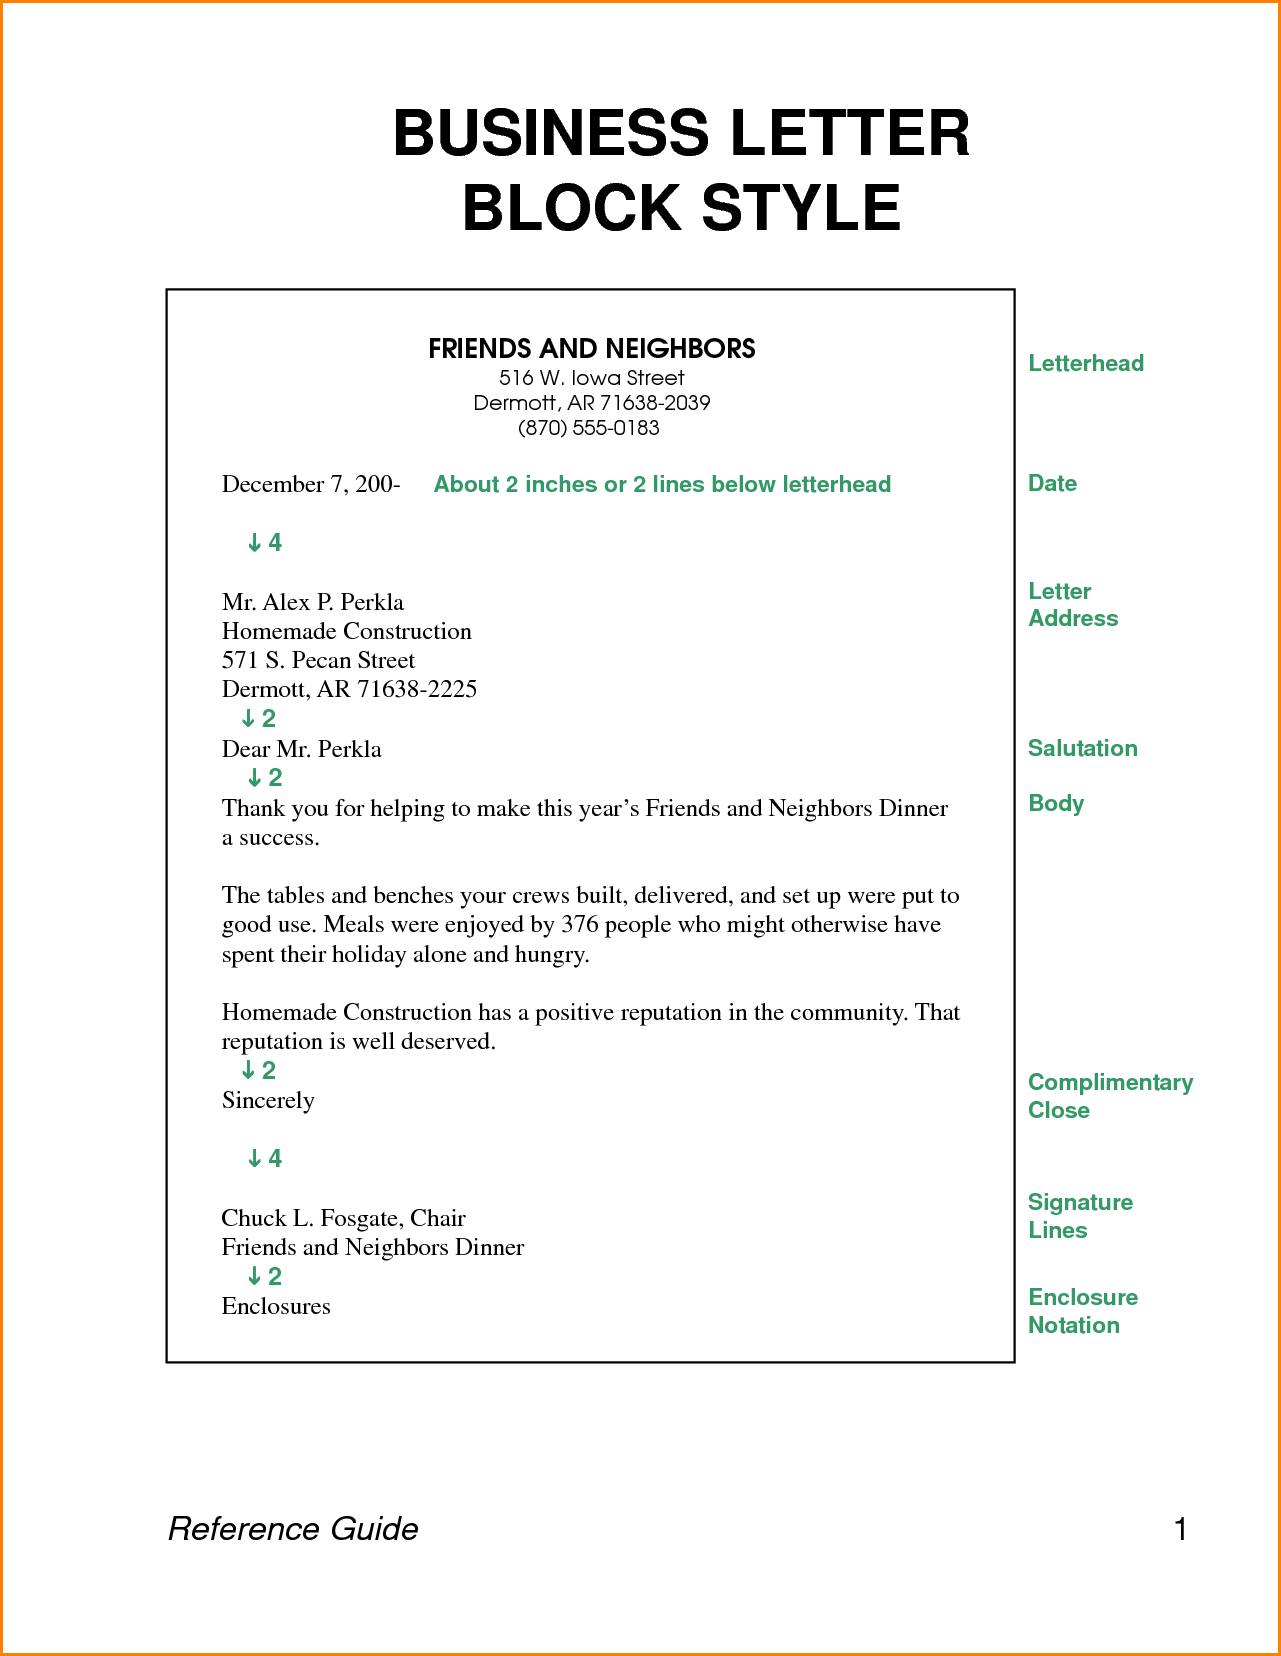 Business letter block style letters format download free documents business letter block style letters format download free documents pdf word flashek